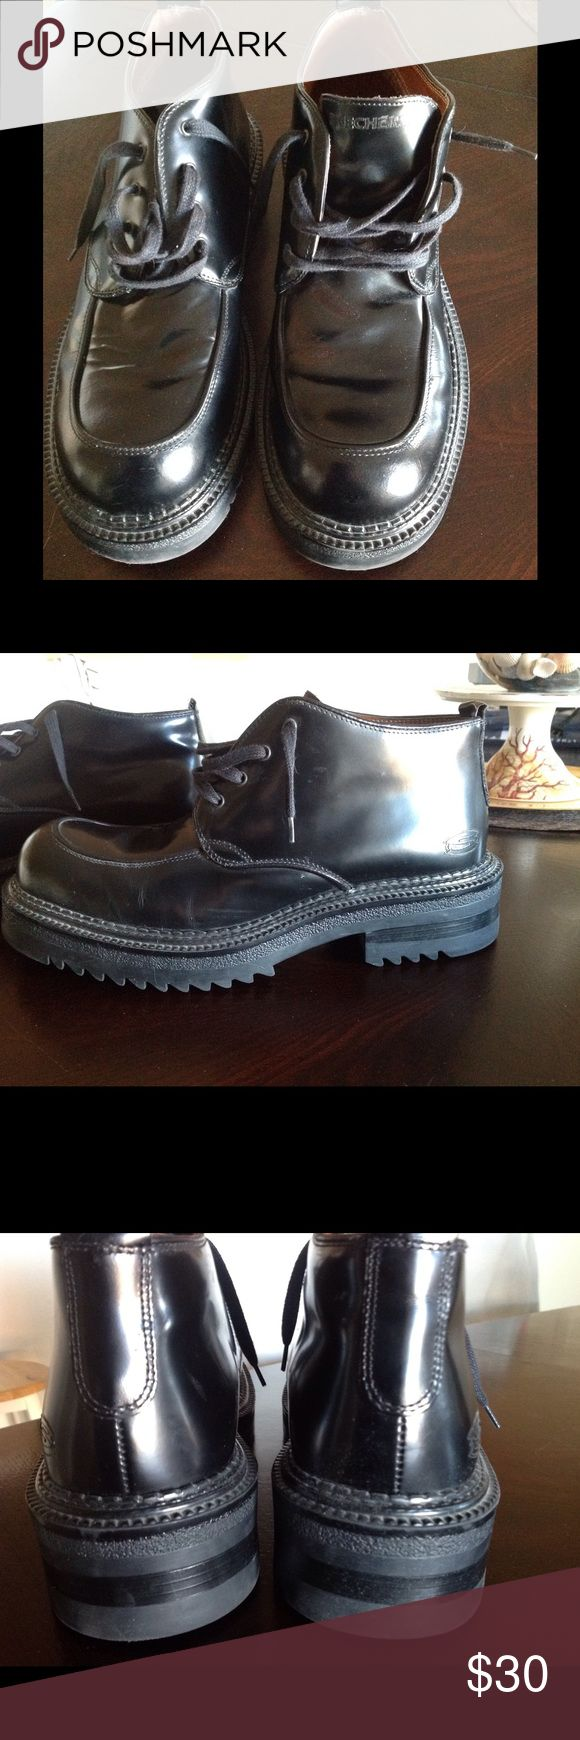 NWOT MENS BLACK LEATHER CHUKKAS/ BOOTS SIZE 10.5 LEATHER BOOTS FROM SKECHERS, MADE IN ITALY SIZE 10.5, these boots are heavy. My husband only walked around in the house. Skechers Shoes Chukka Boots